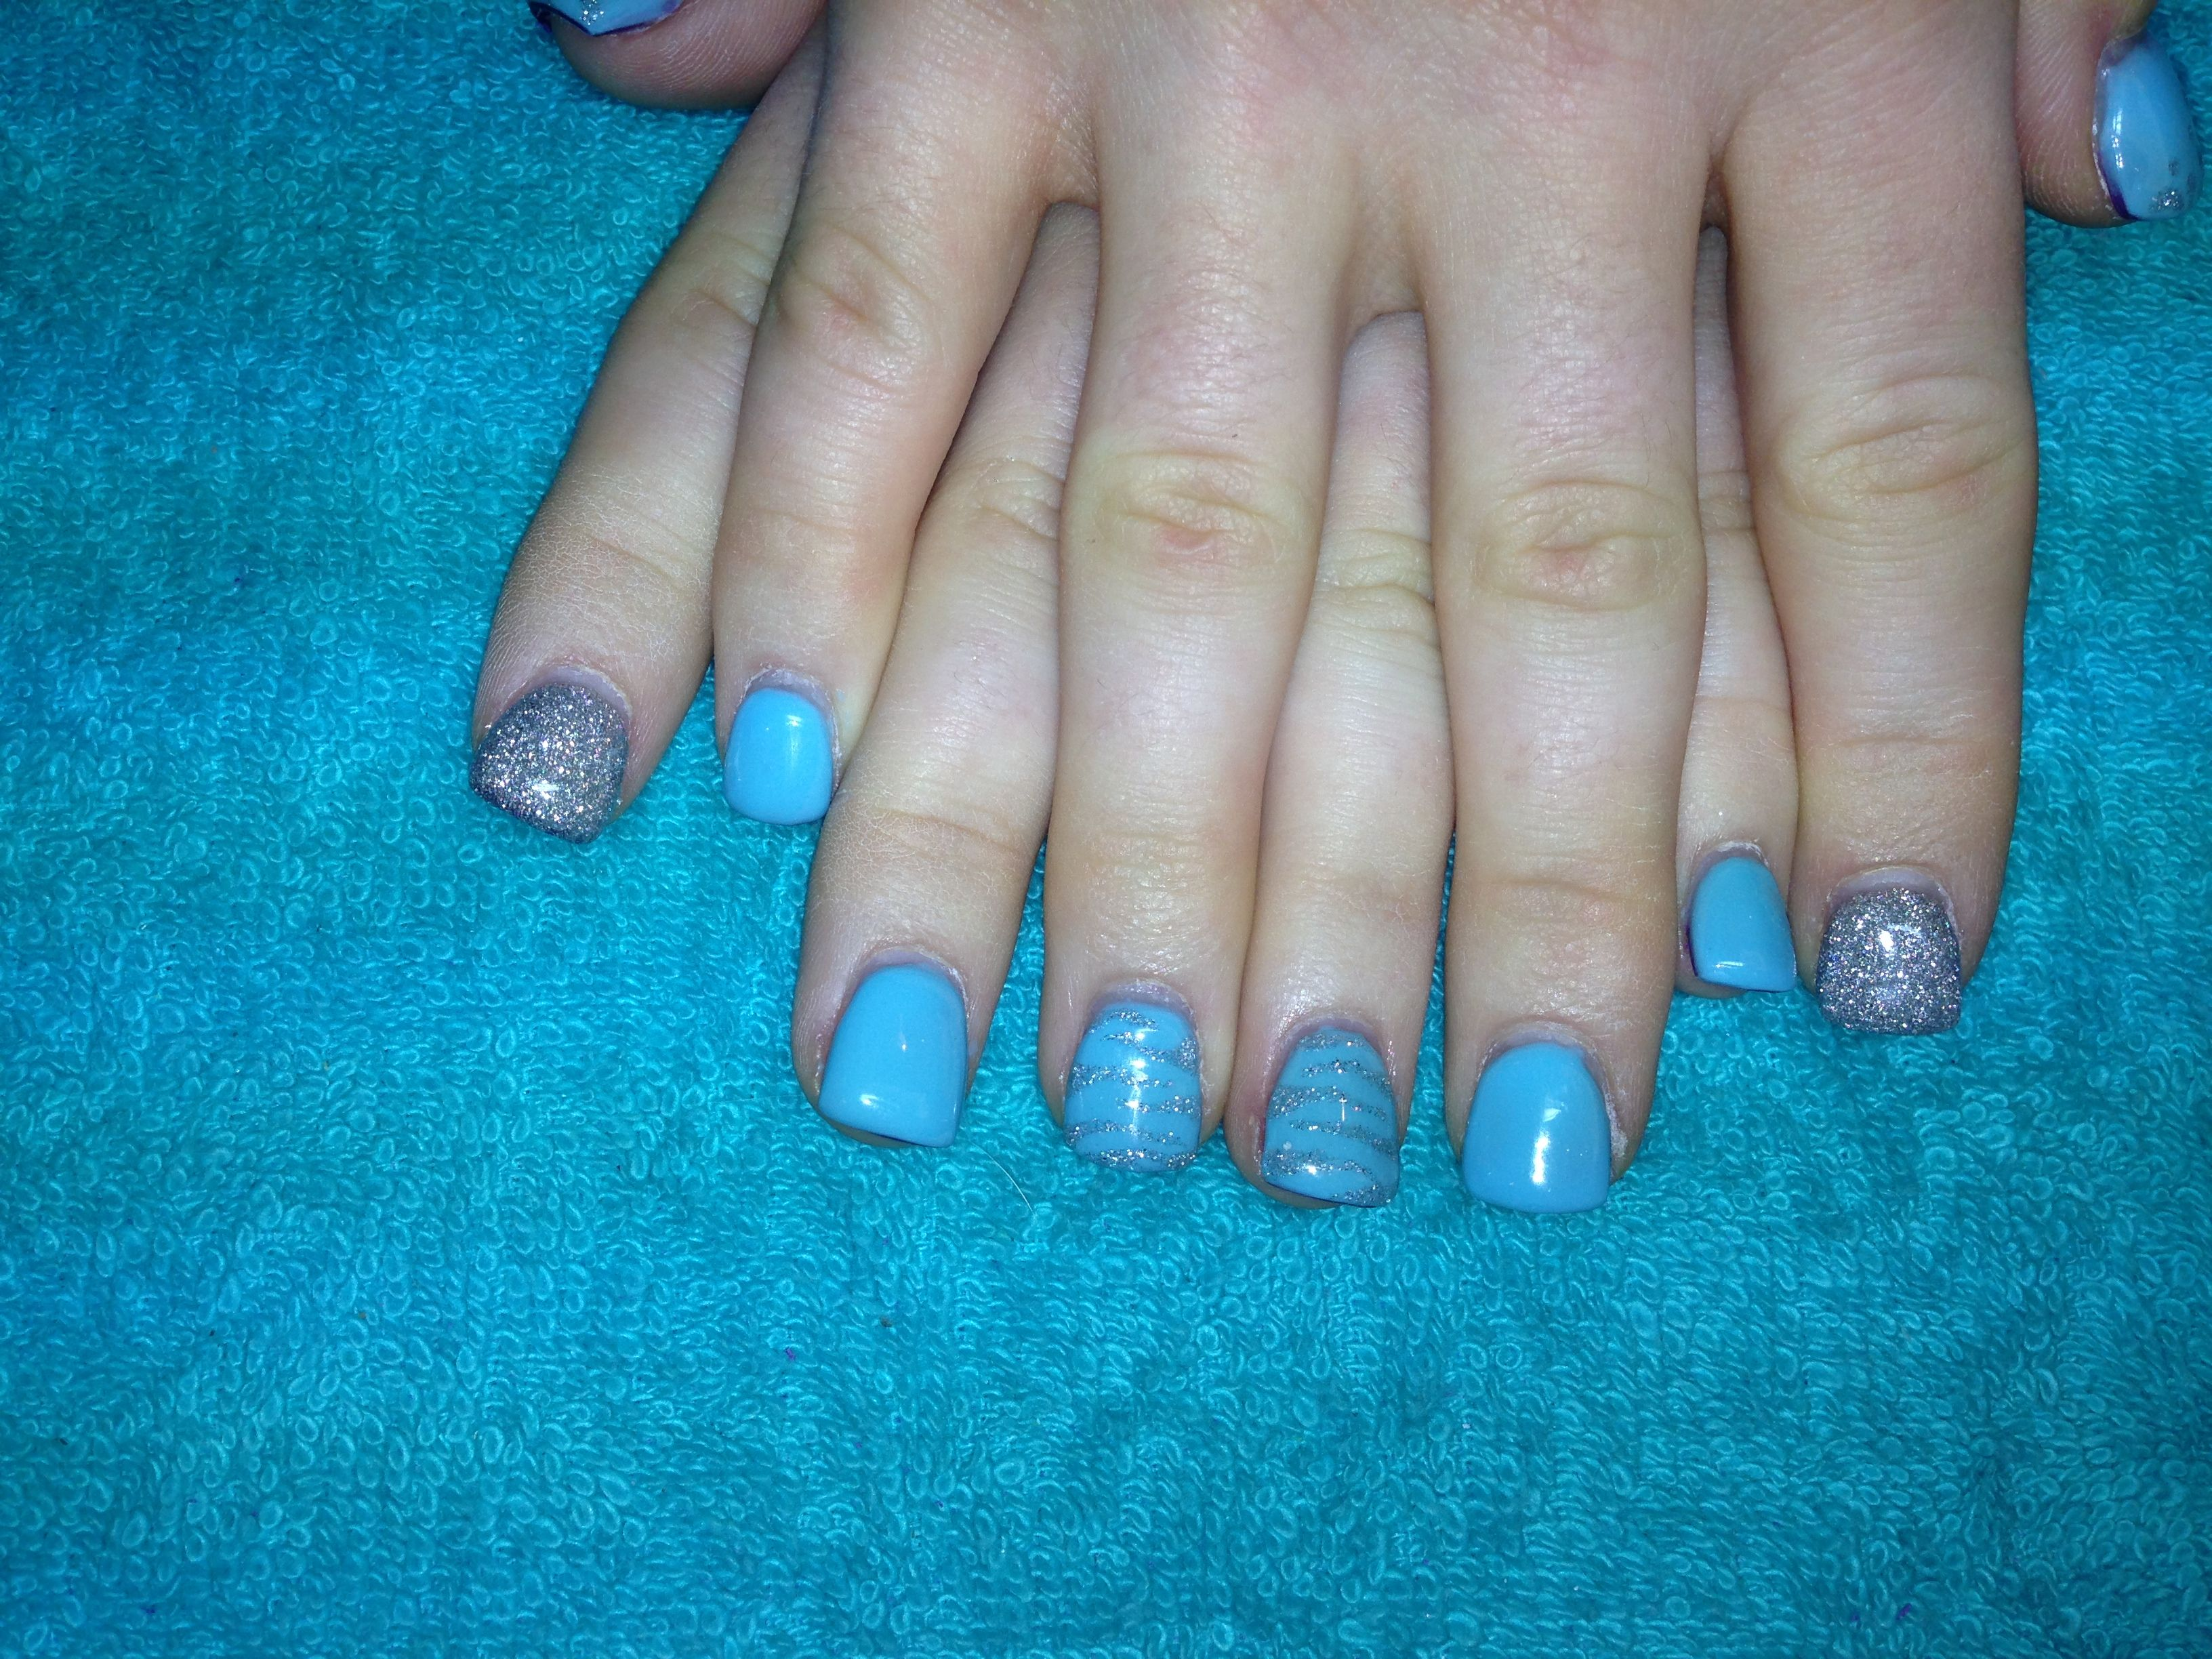 Pale blue with silver tiger stripes, cheetah print thumbs, and ...